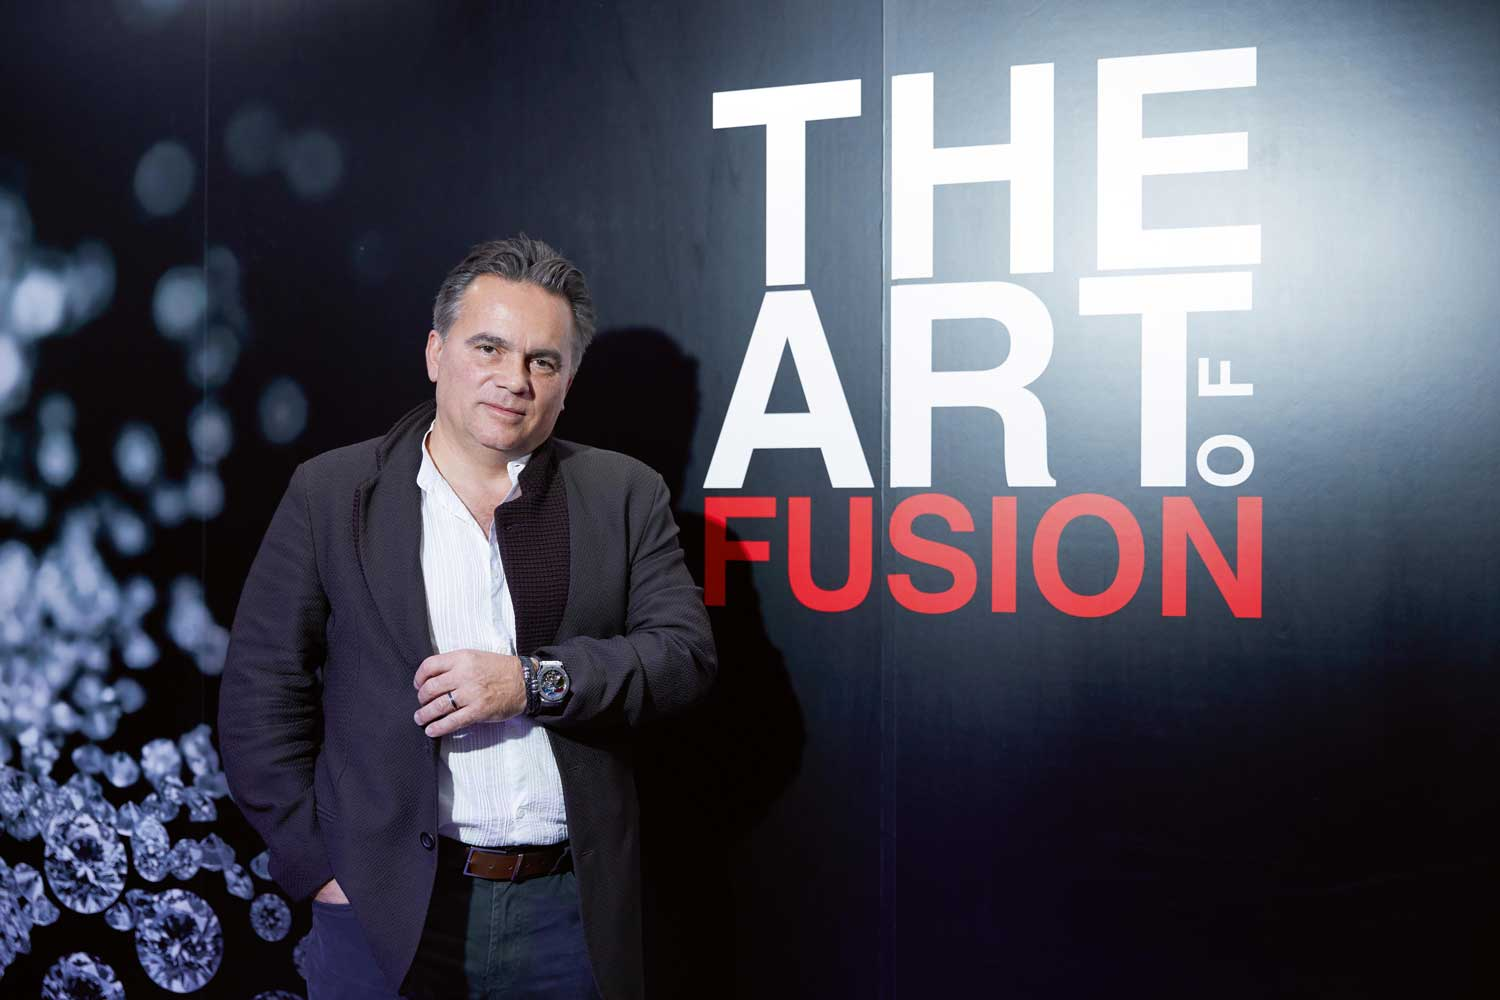 Mathias Buttet, the Director of Research and Development at Hublot